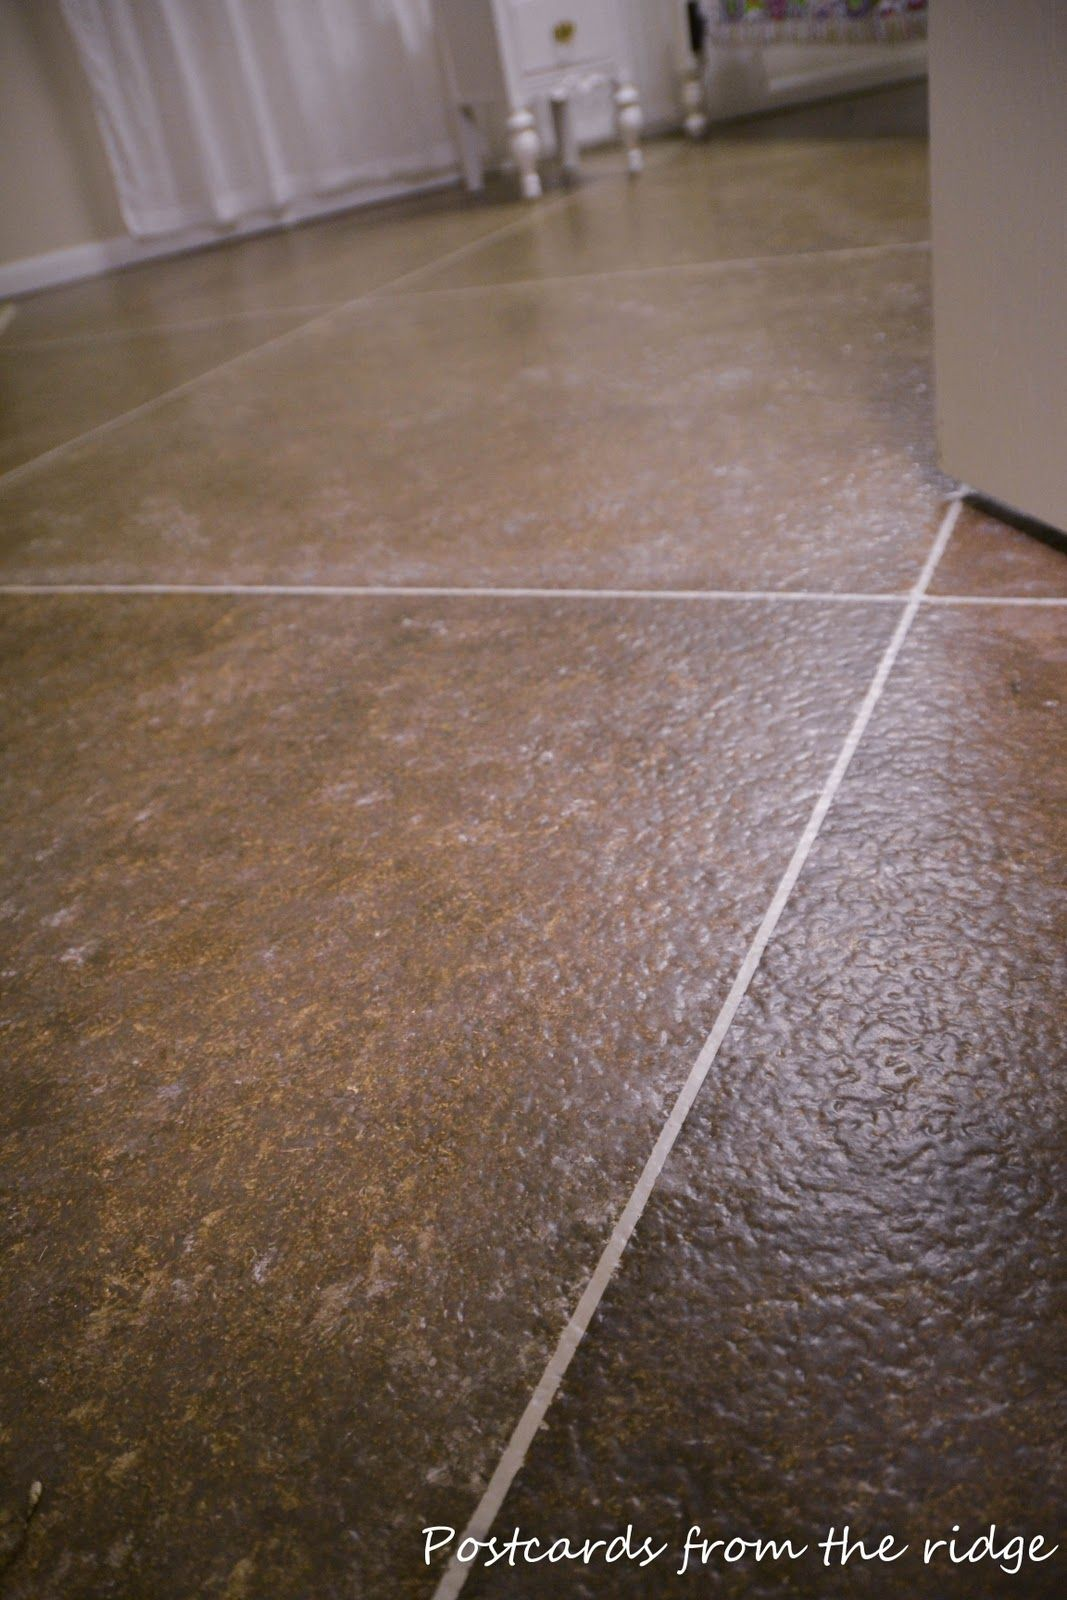 Postcards From The Ridge DIY Faux Painted Tile Floor Doesnt That Look Great Find Out How To